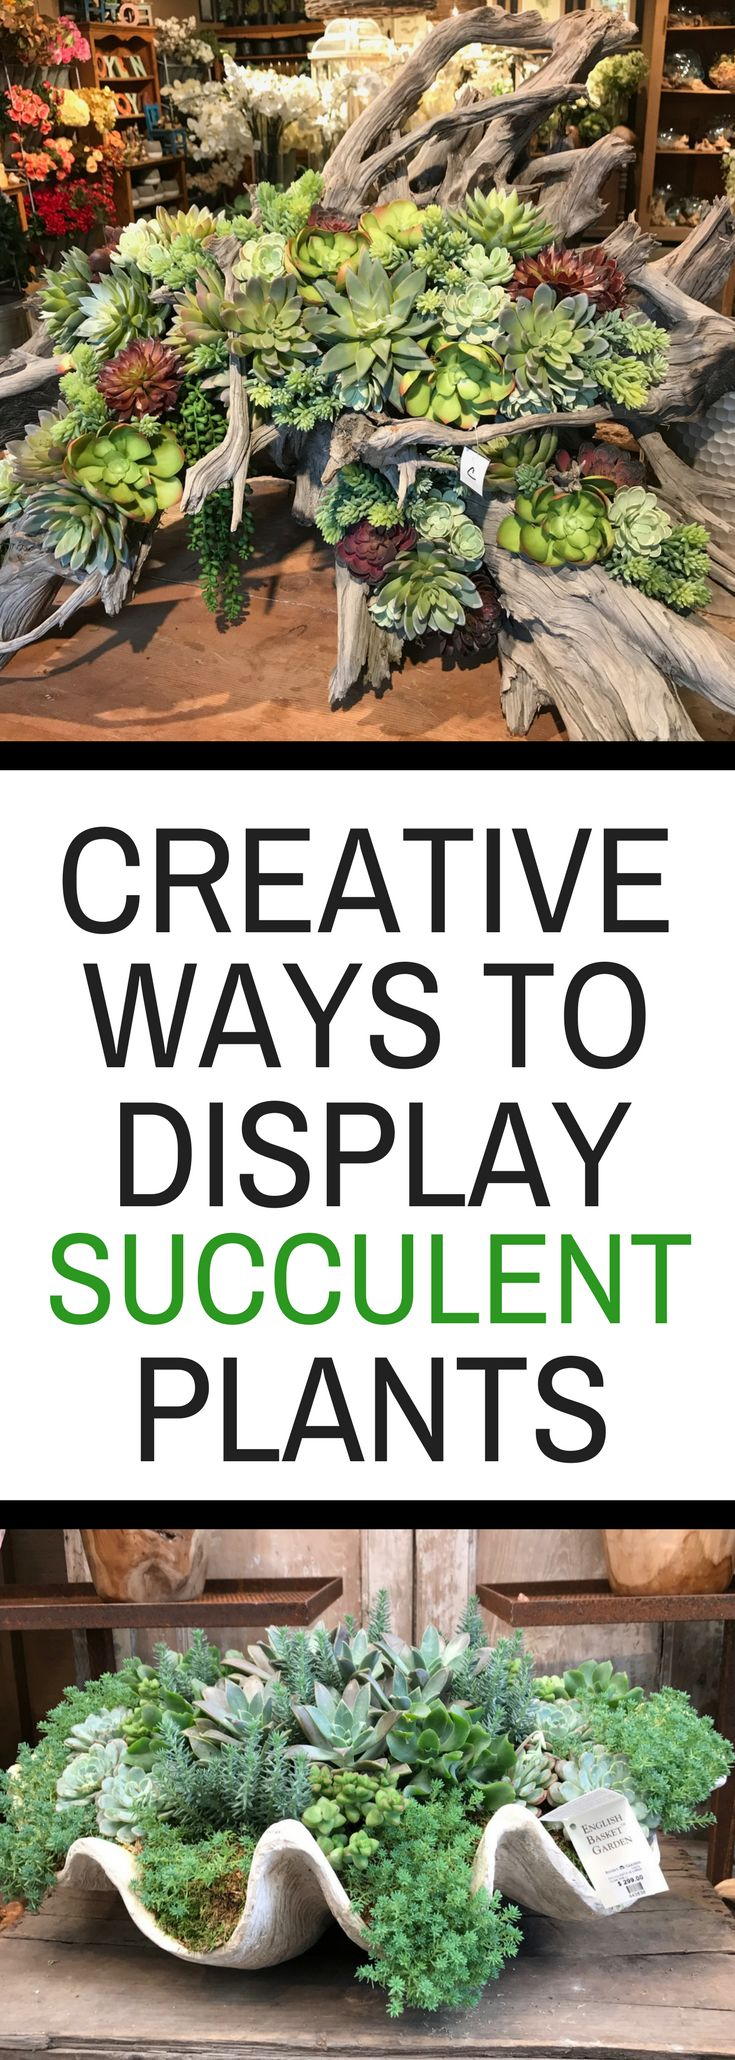 Creative Ways to Display Succulent Plants - such a fun variety